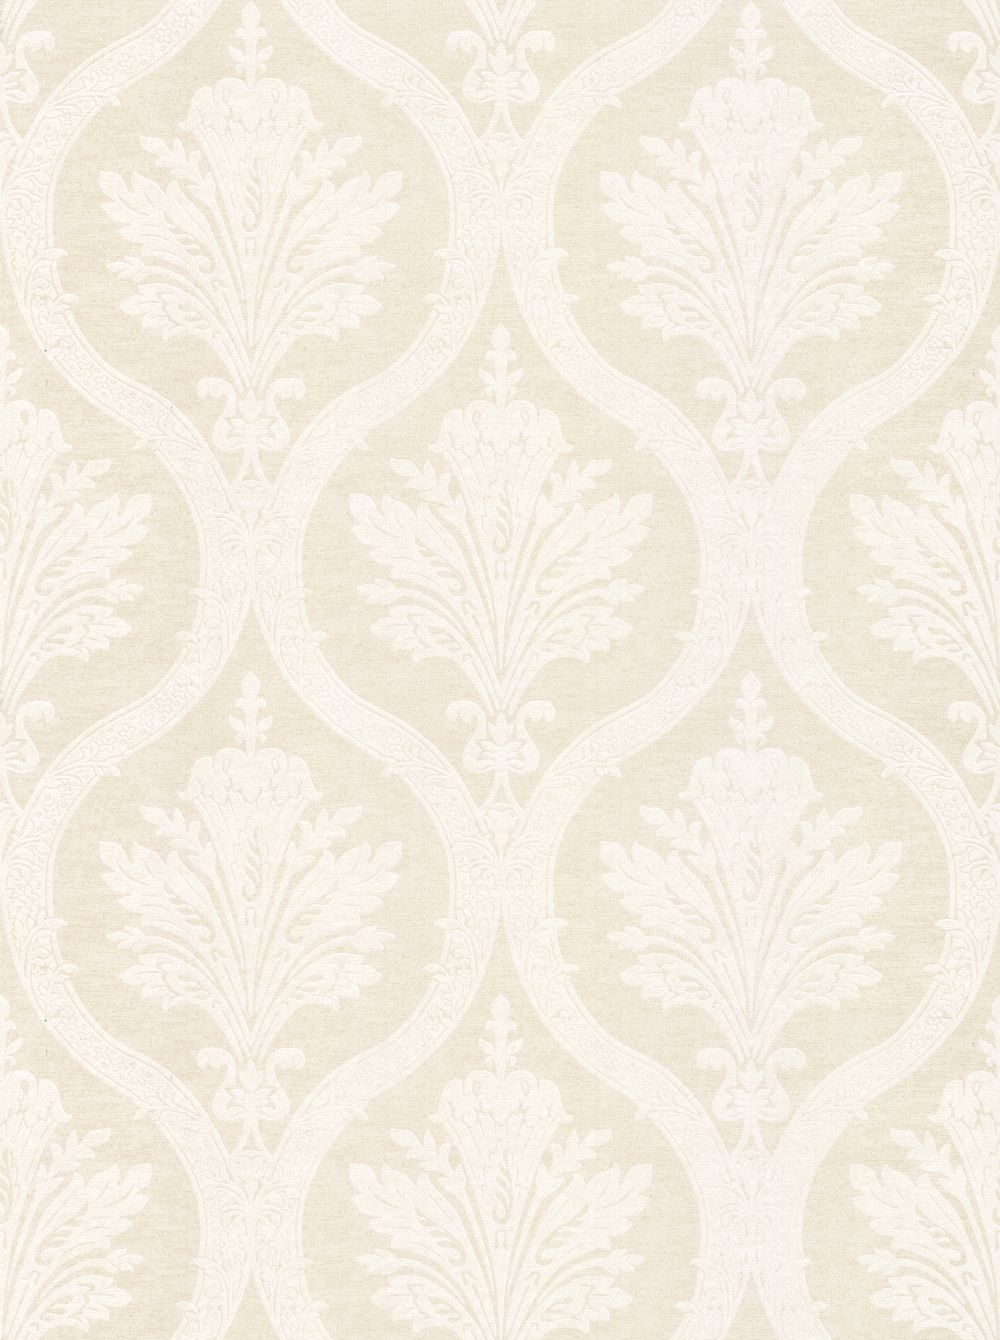 Thibaut Clessidra Damask Beige Wallpaper - Product code: T89164